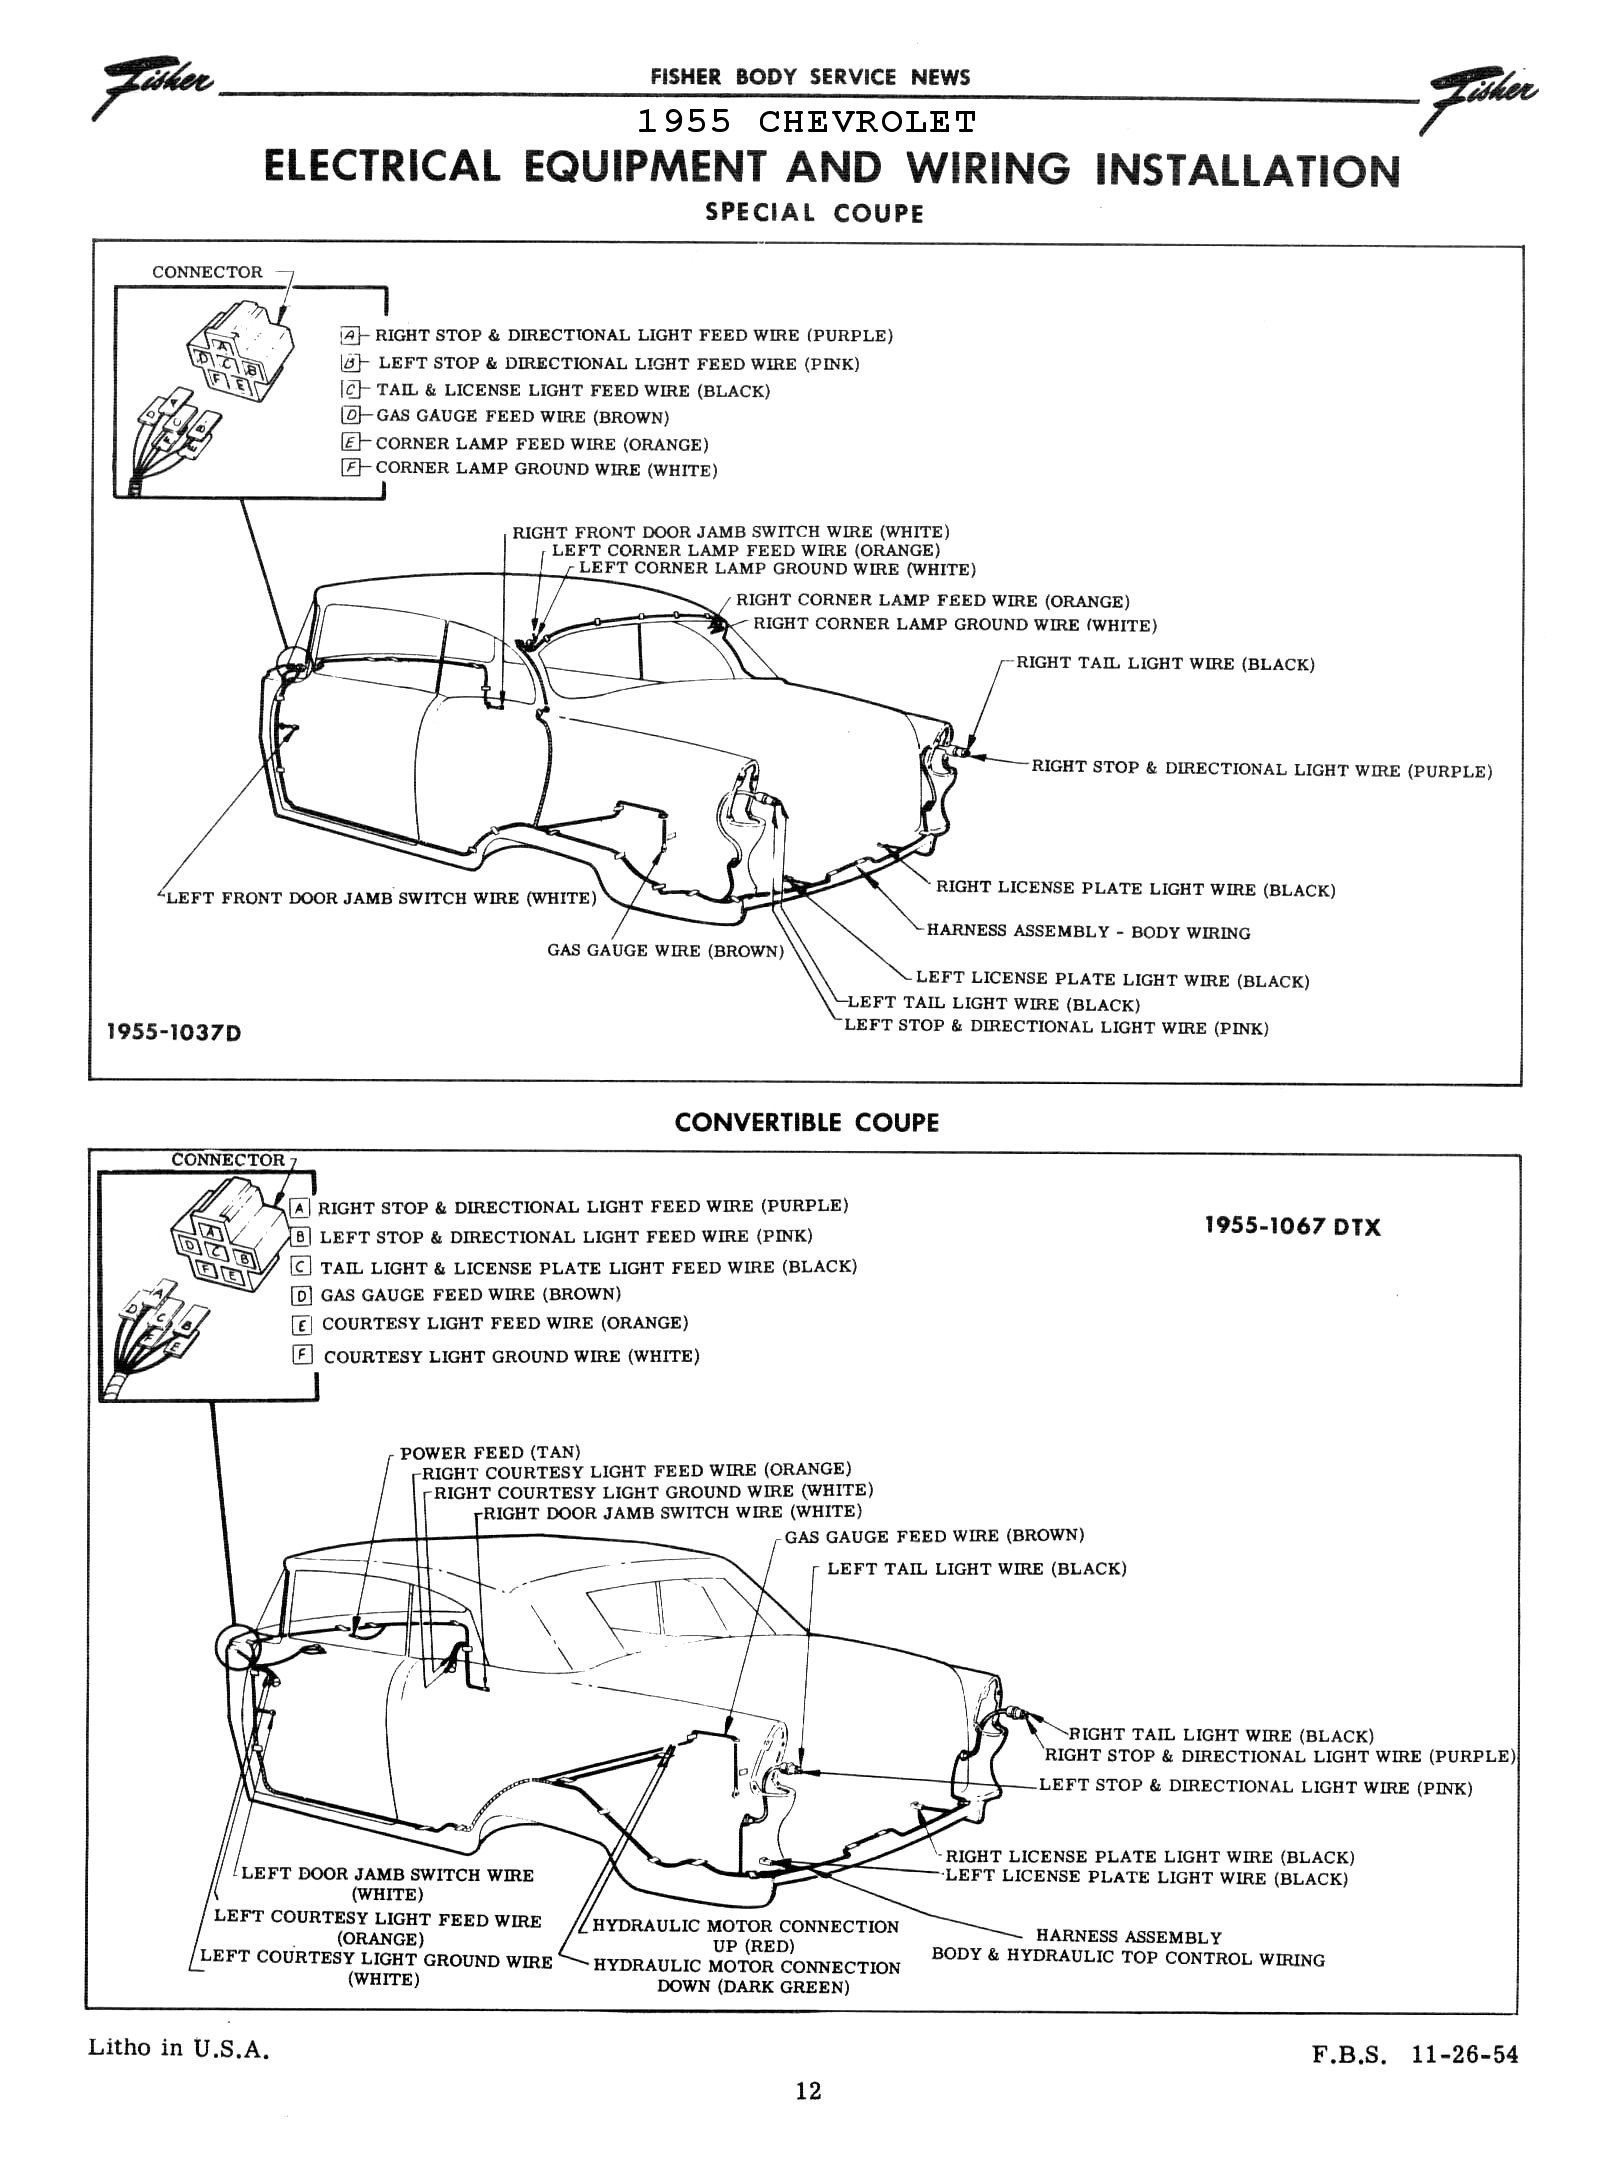 55fsn140612 chevy wiring diagrams wiring diagram 53 chevy truck at edmiracle.co